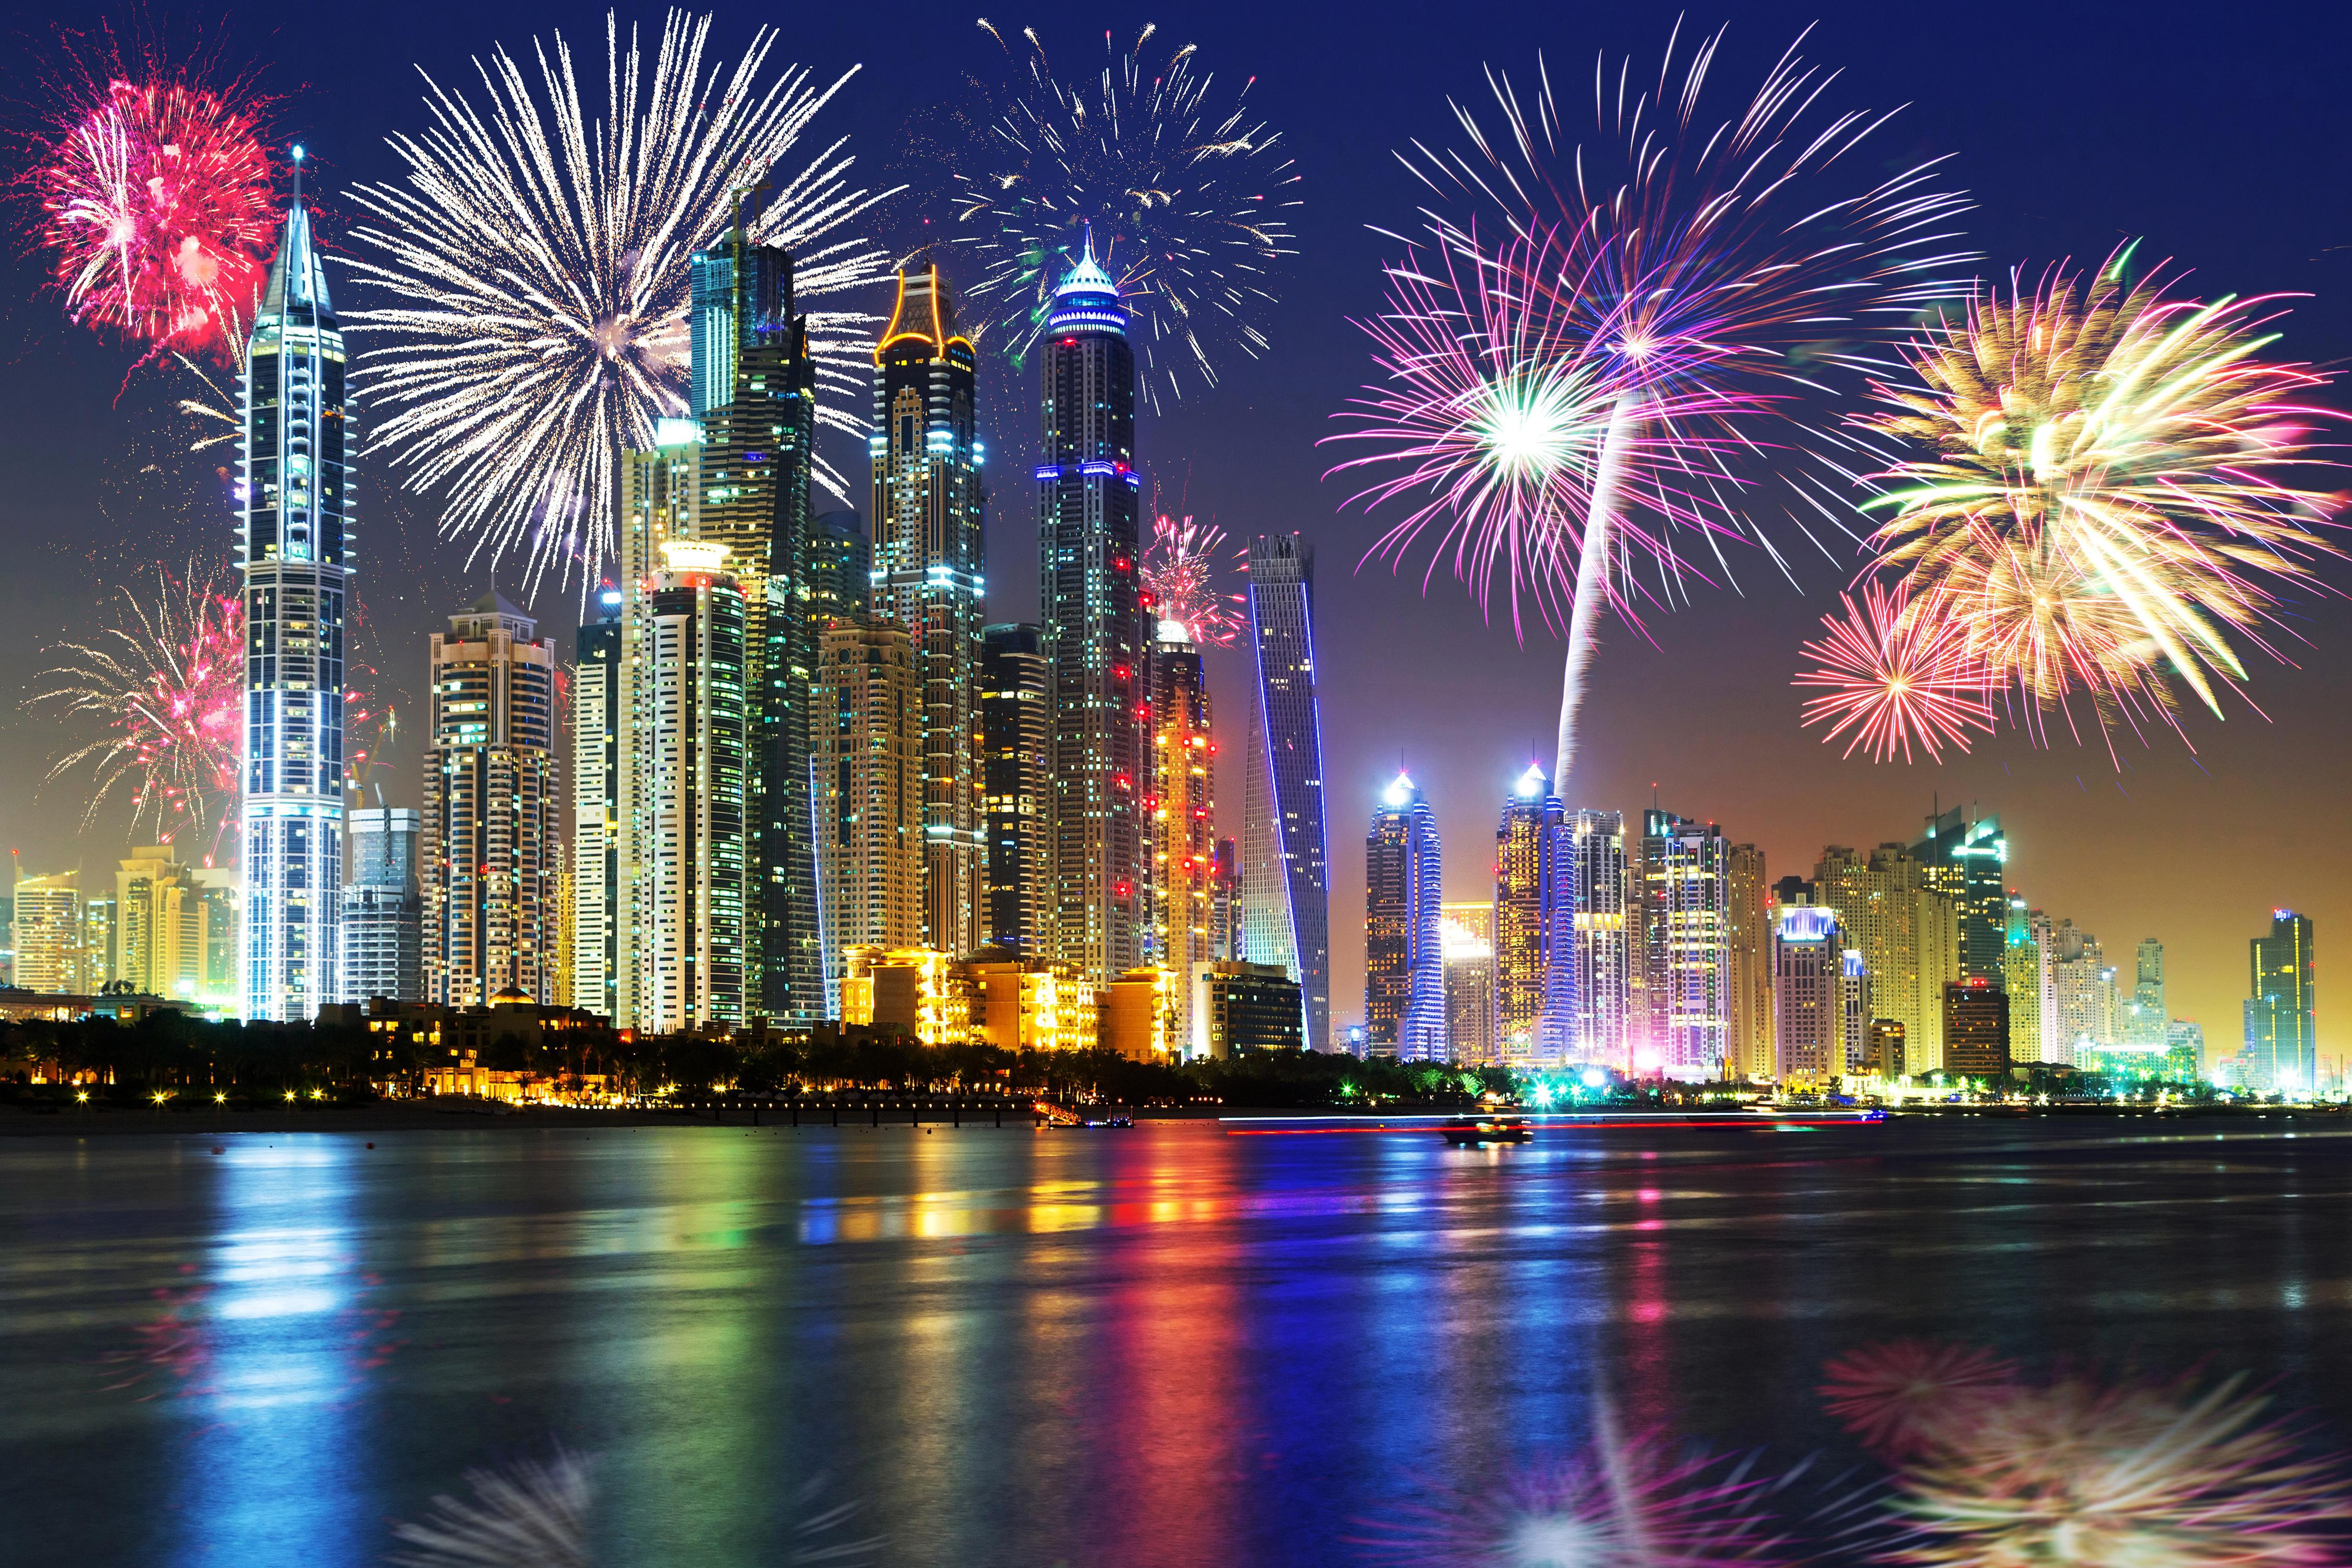 Wallpapers Dubai New year Fireworks Emirates UAE Sky Night 4500x3000